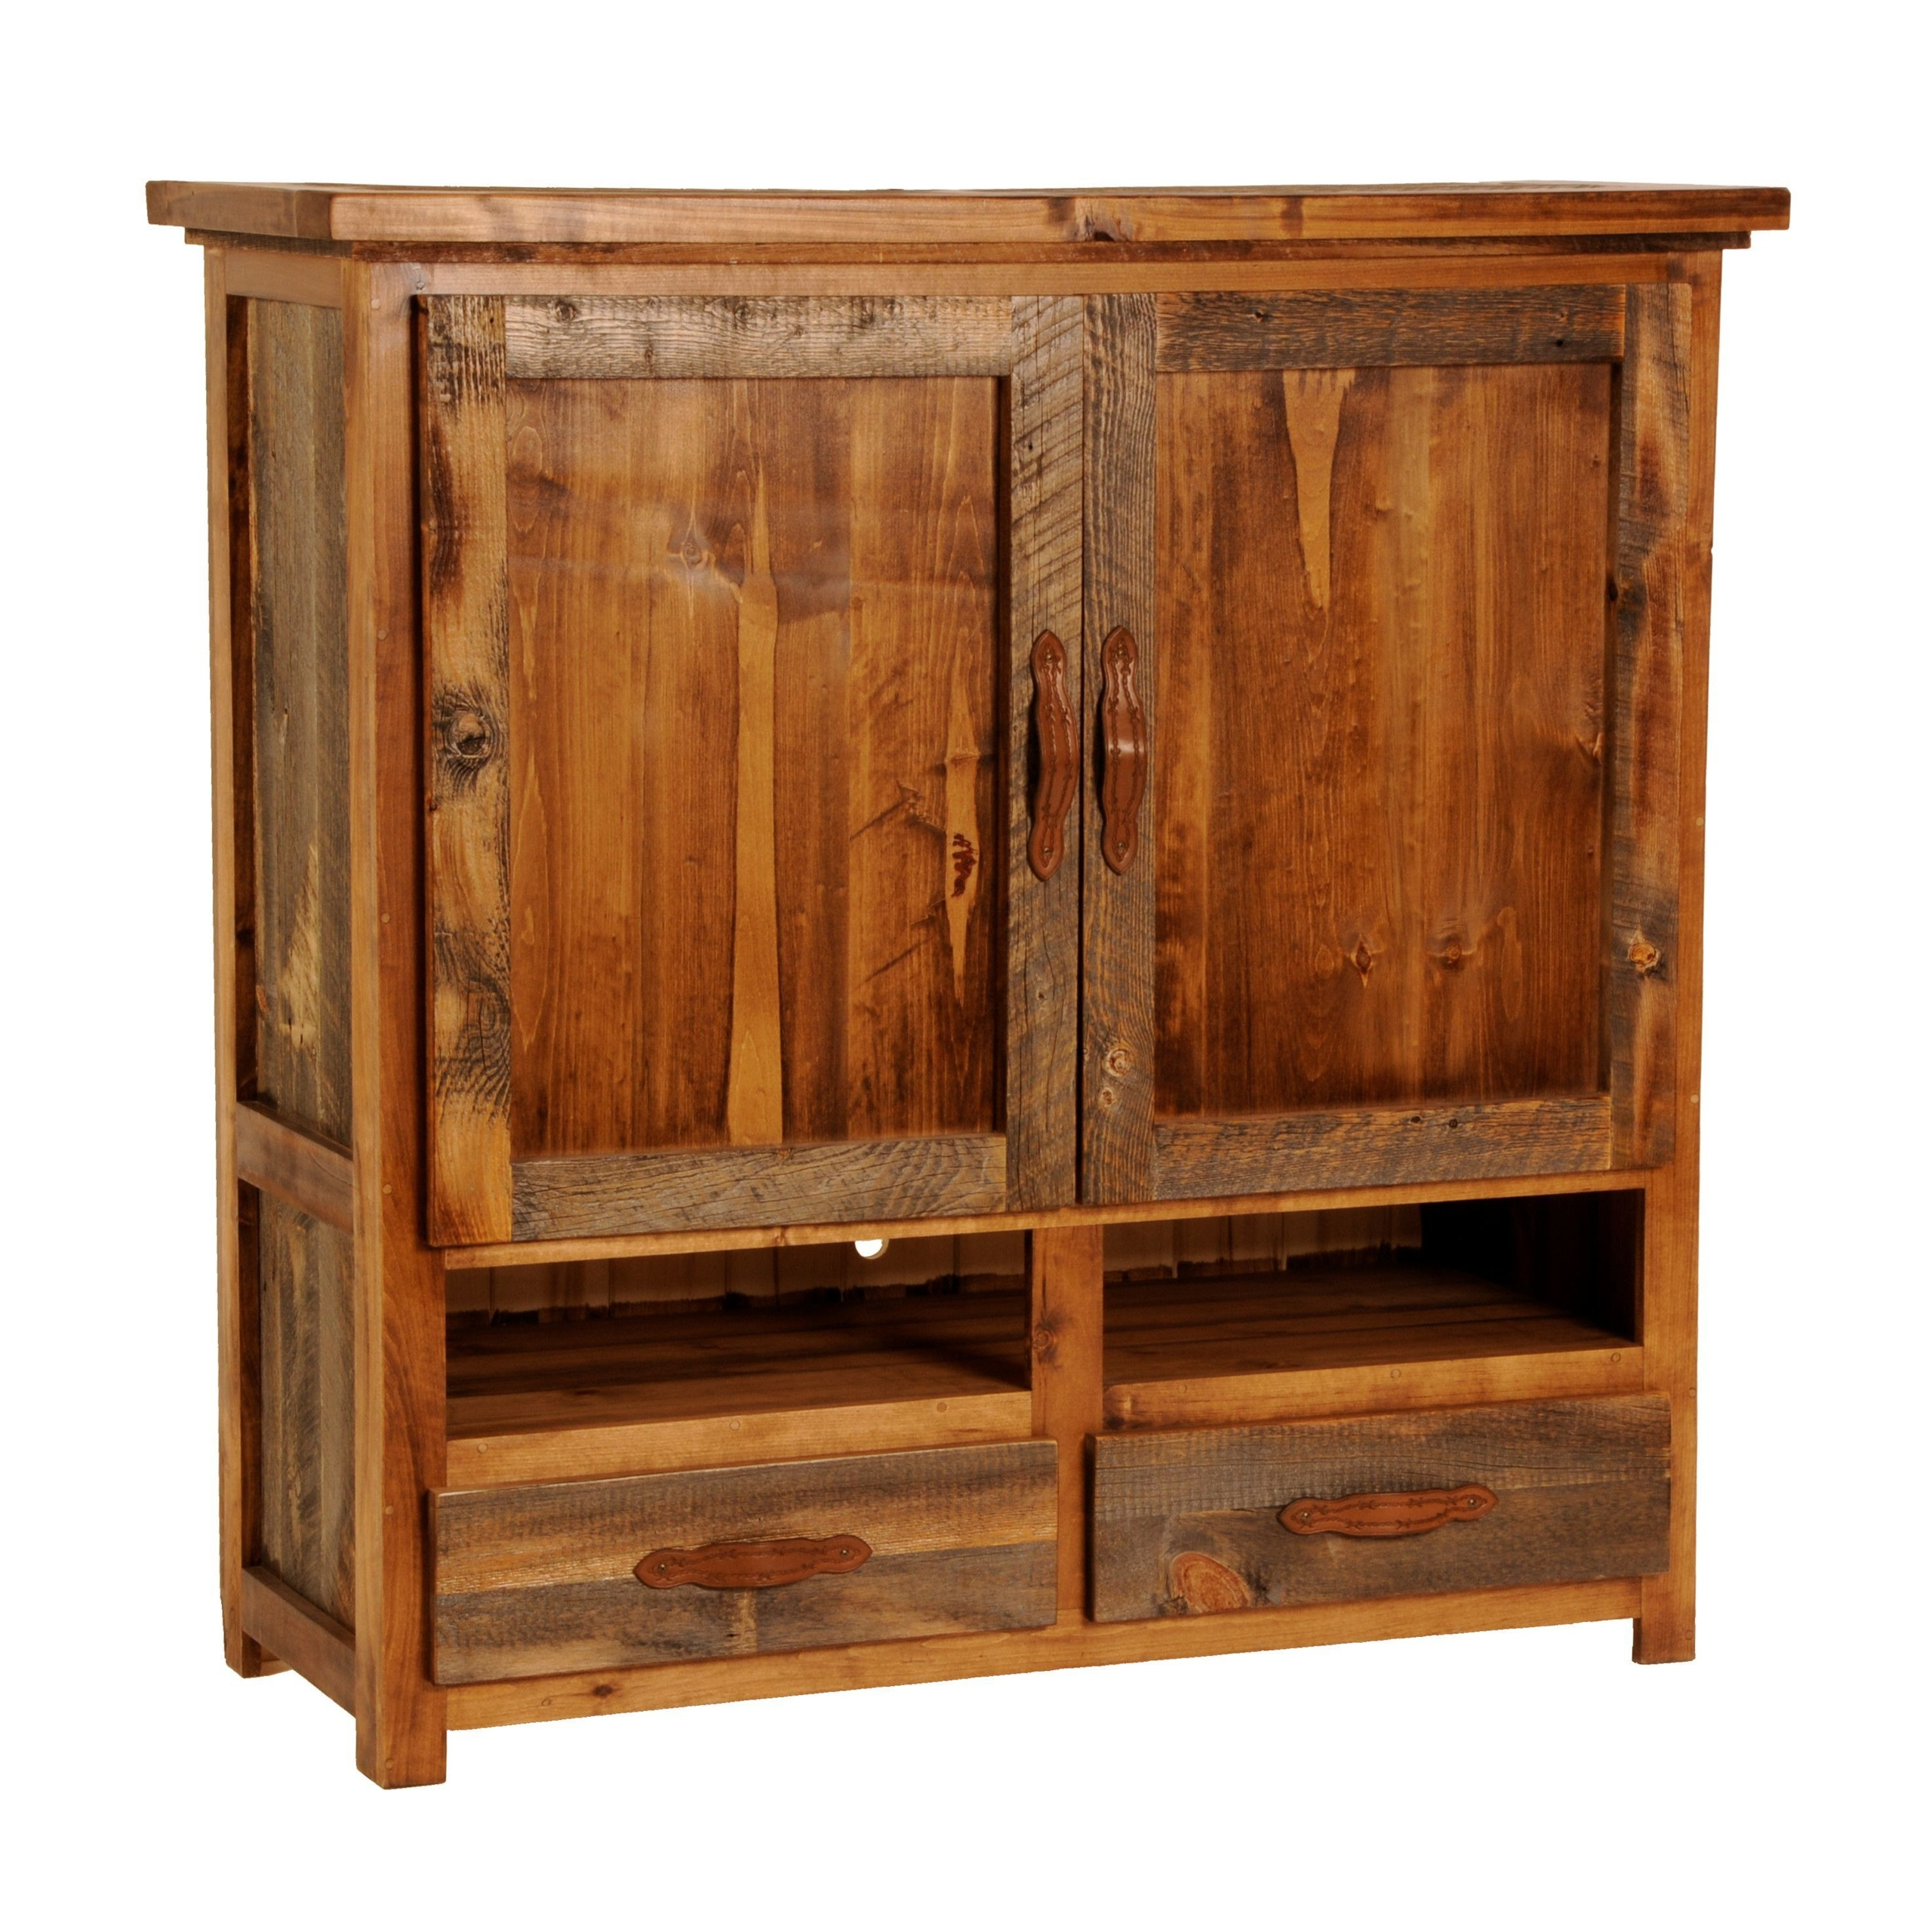 Beau Rustic Wyoming Flat Screen Tv Armoire